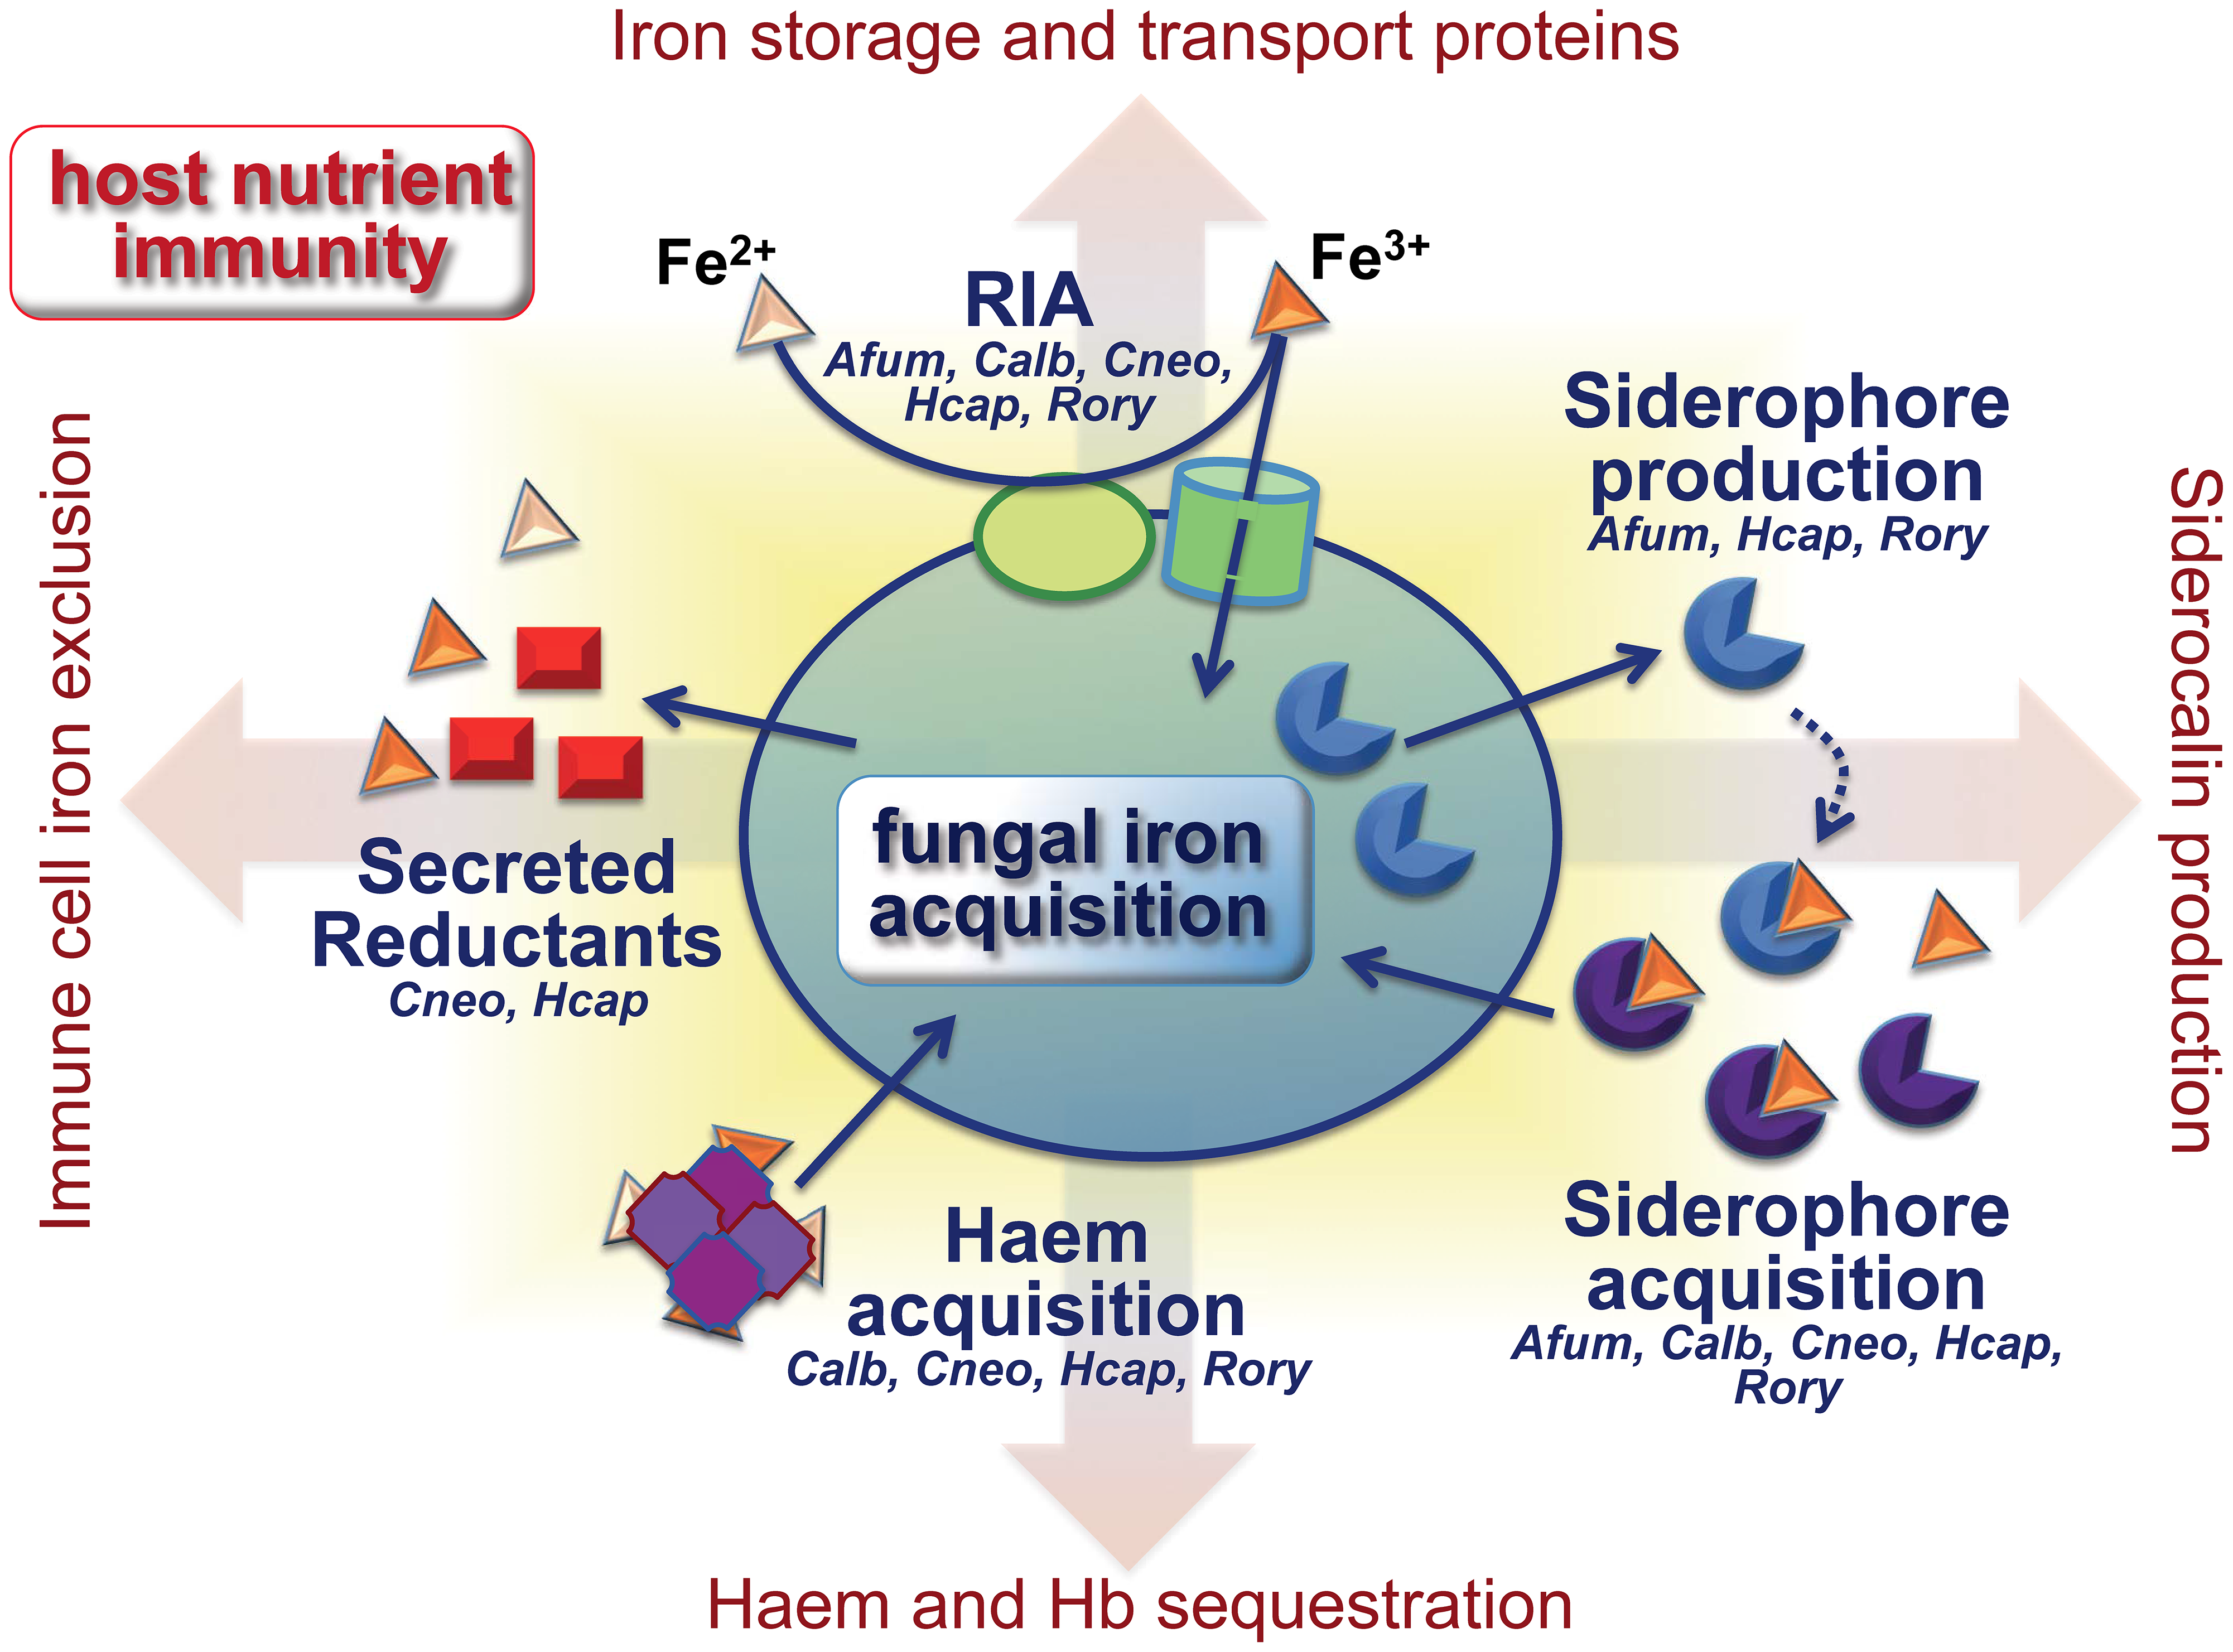 Fungal iron scavenging competes with mammalian nutritional immunity.